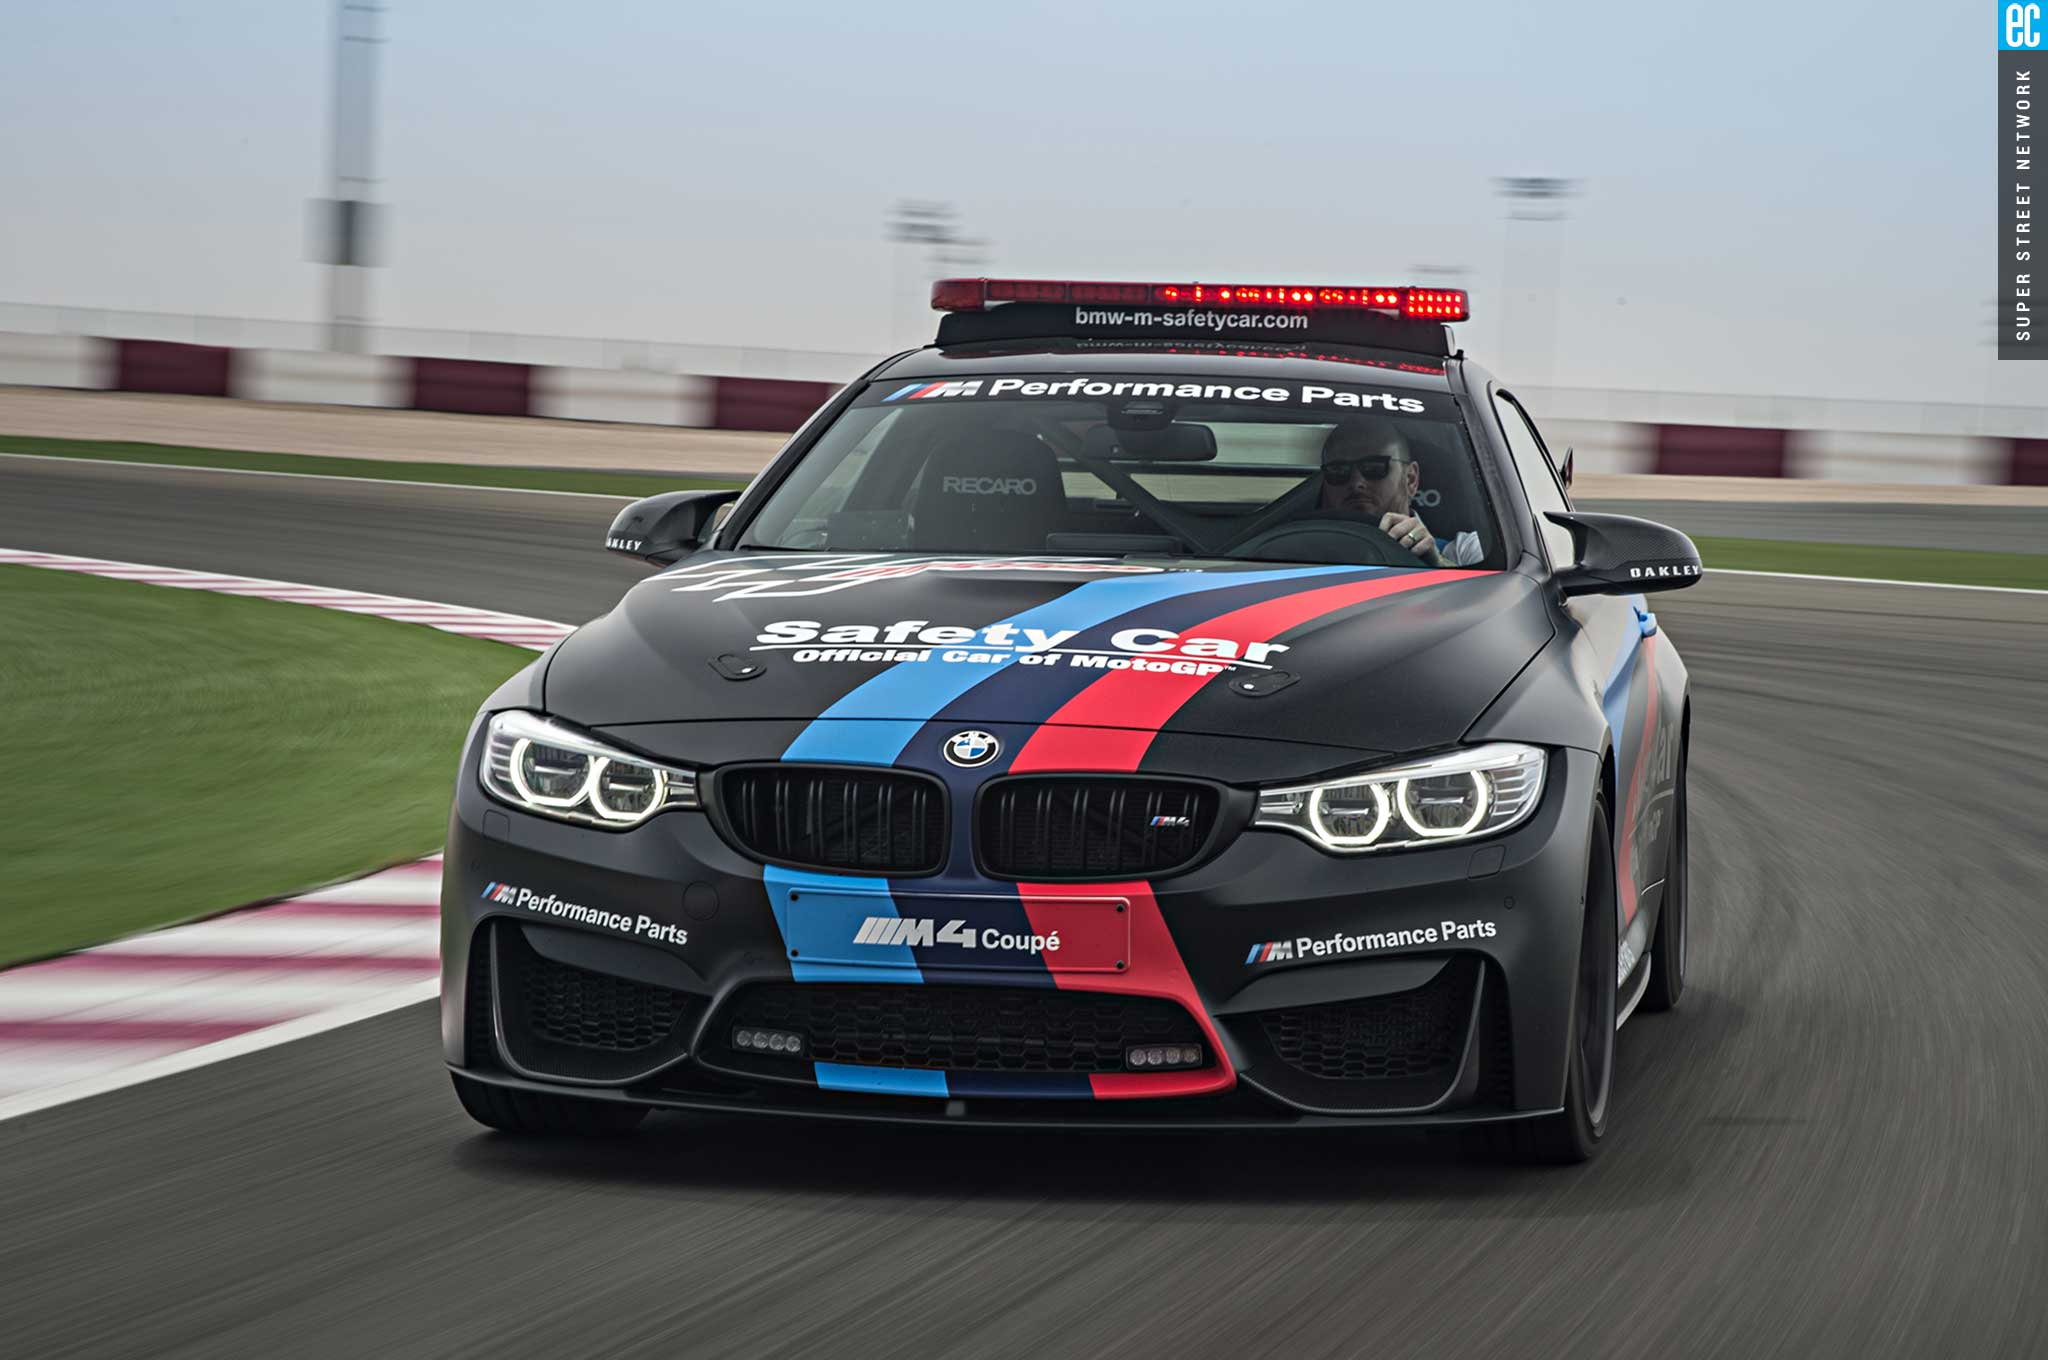 2015 Bmw M4 Motogp Safety Car Pace Setter Photo Image Gallery